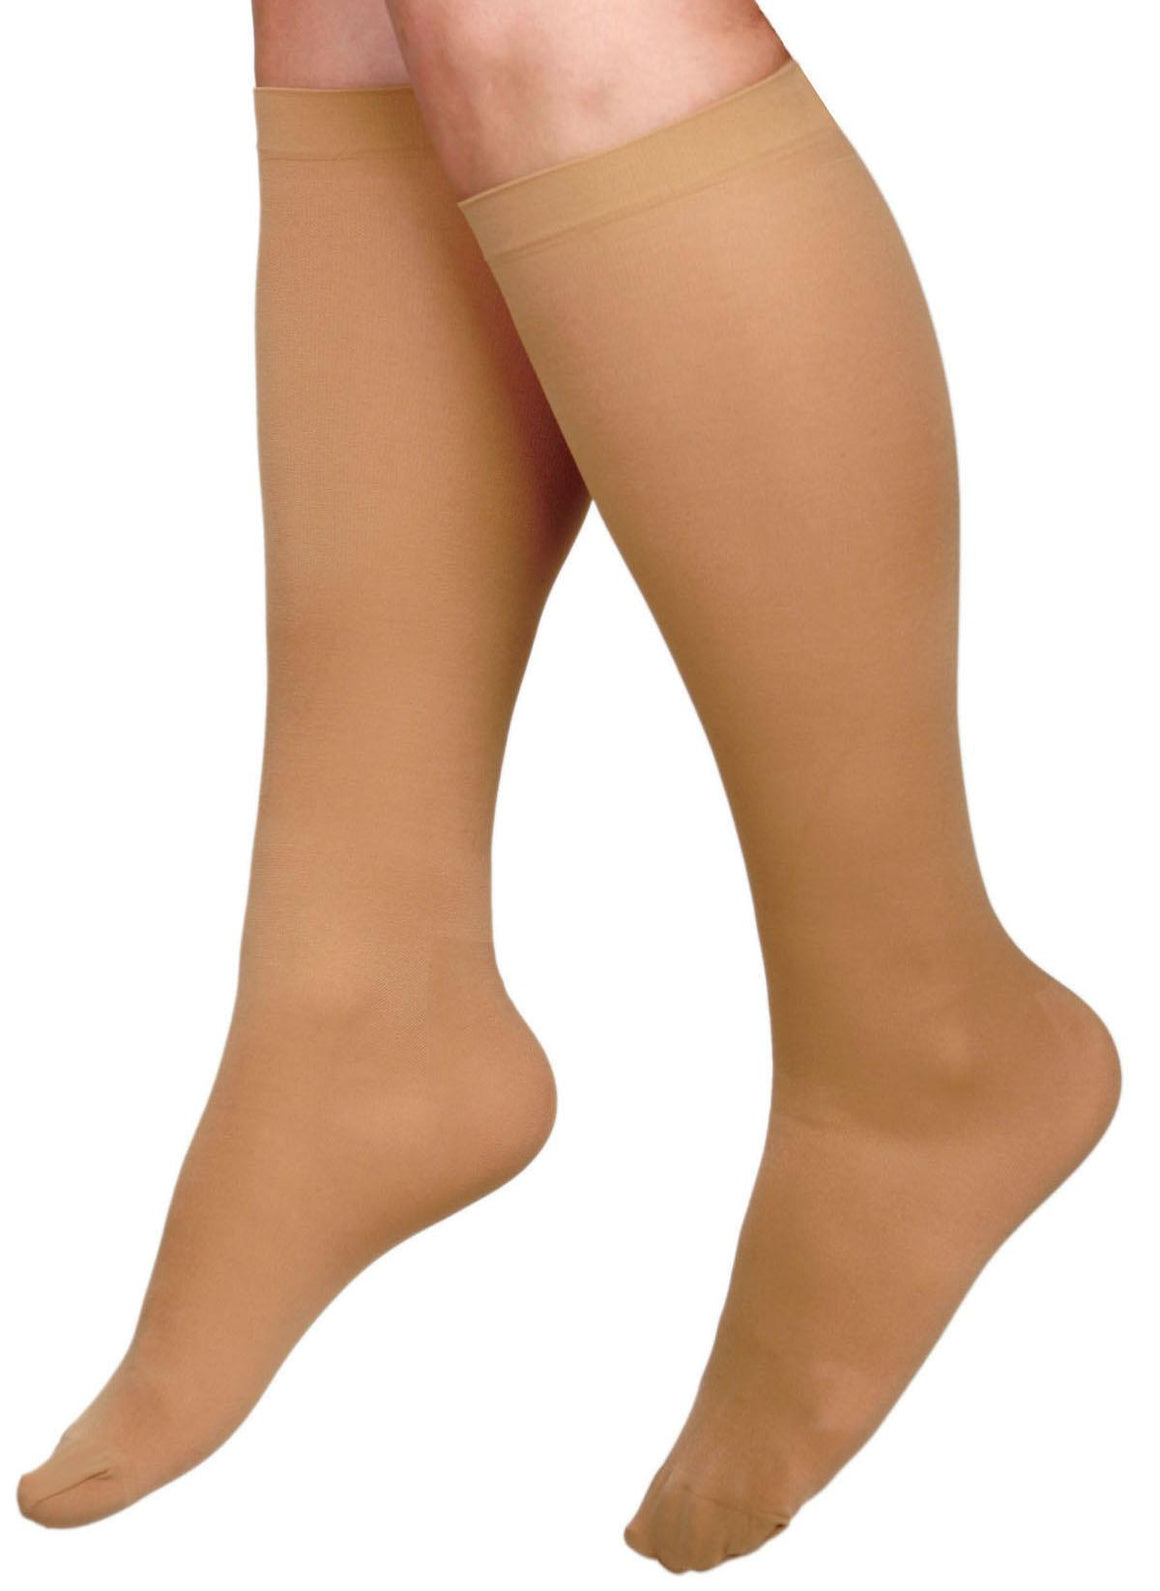 CURAD Knee-High Compression Hosiery,Beige,A, Each